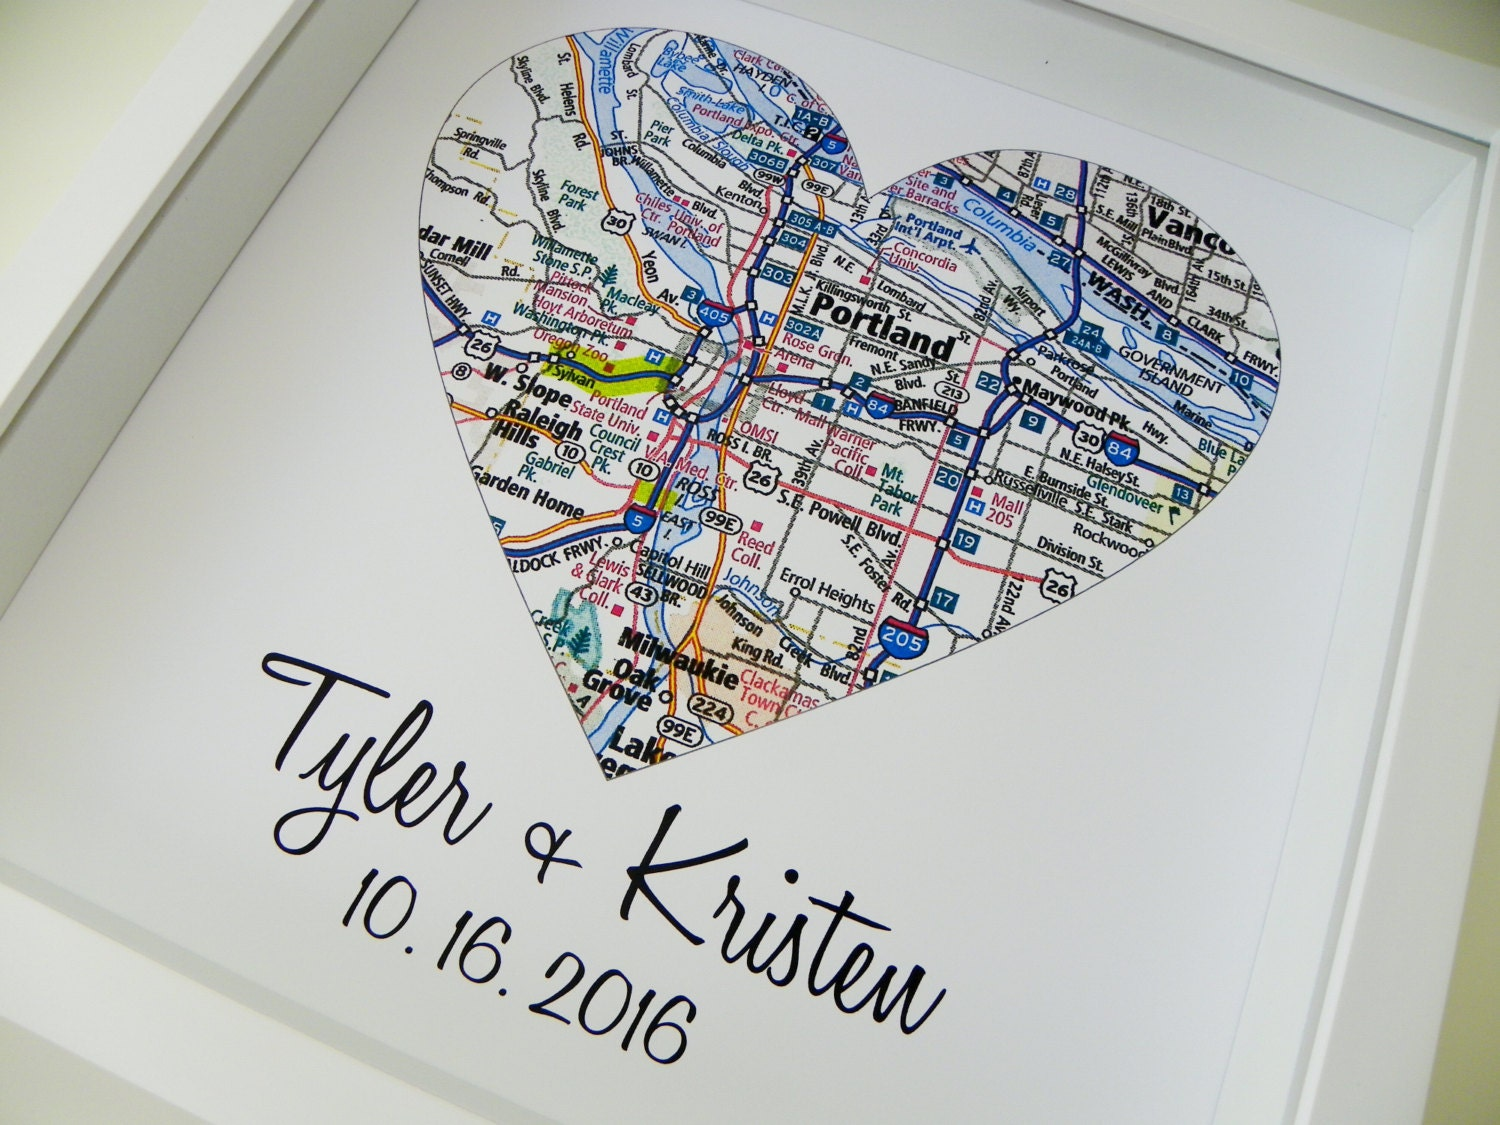 Wedding Gift Framed Art : Wedding Gifts Personalized Map Art Heart Map FRAMED Print Any